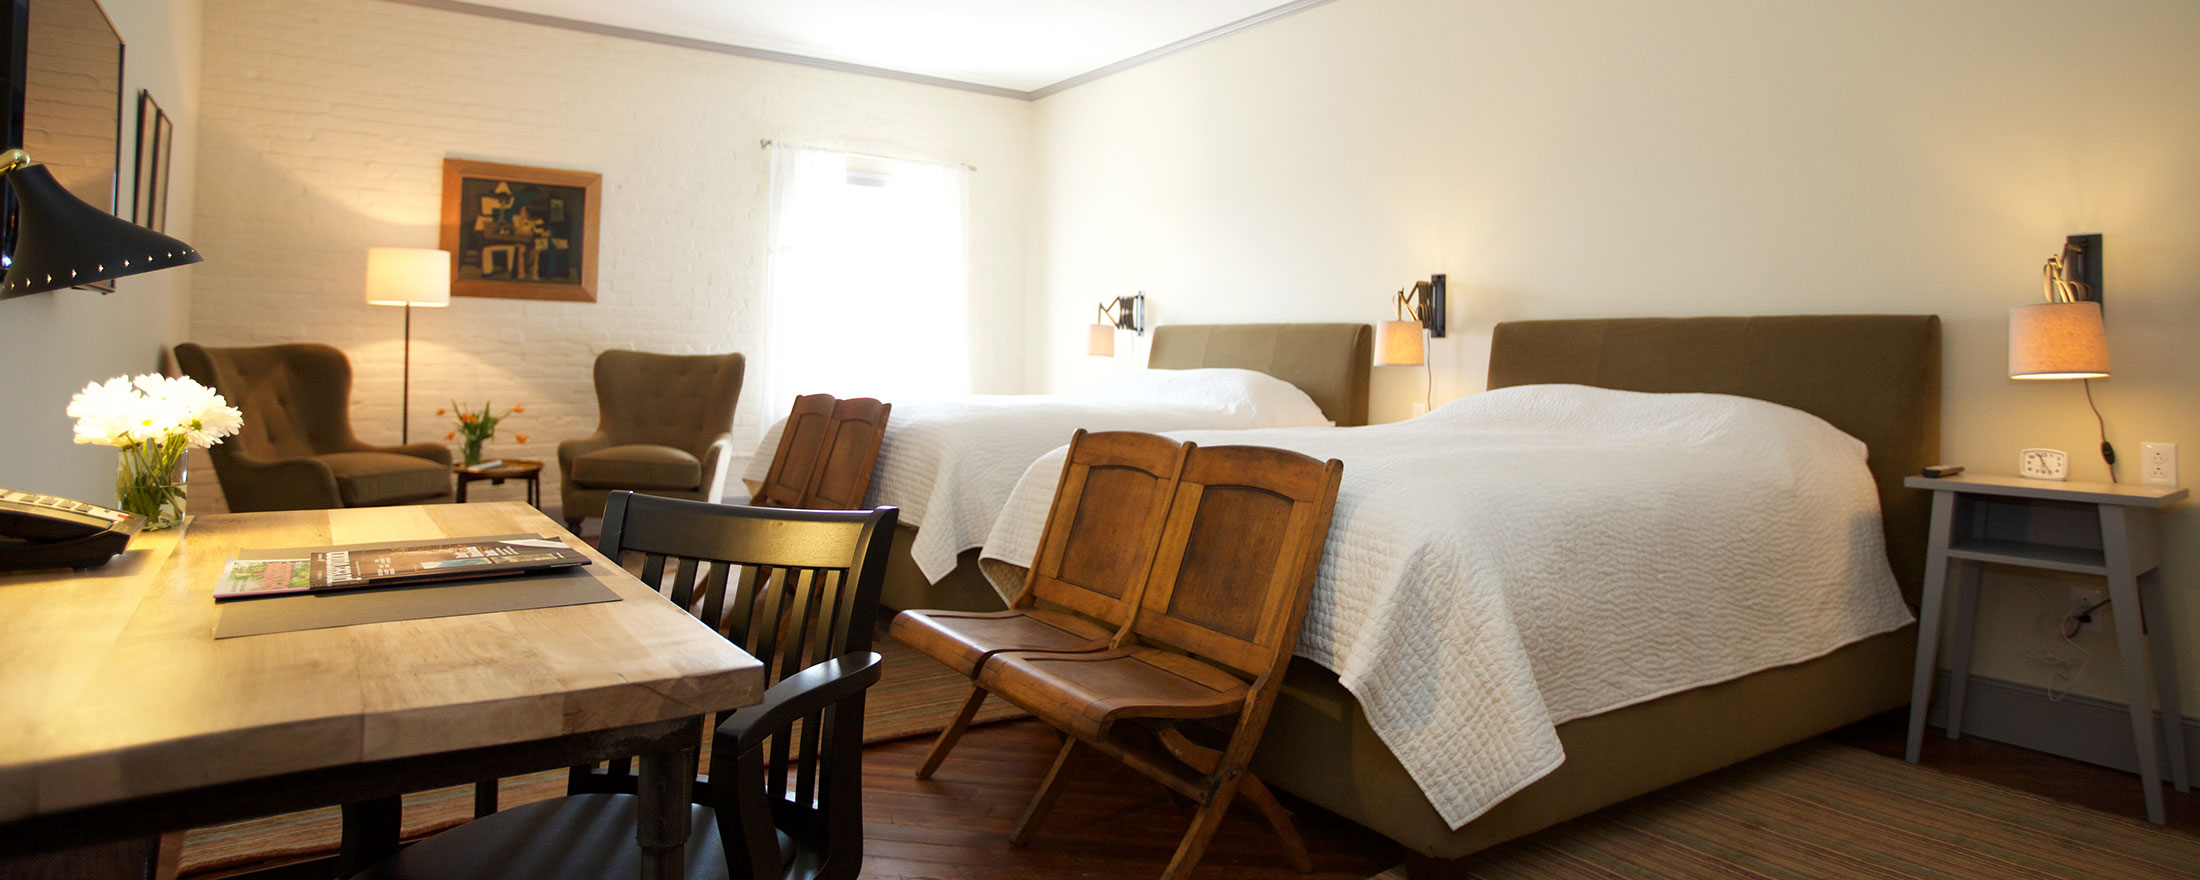 Captivating Whether Your Pittsfield, MA Getaway Is Meant To Be Romantic, Family Fun, Or  Business Focused, We Have A Room That Fits Your Need And Suits Your  Character.